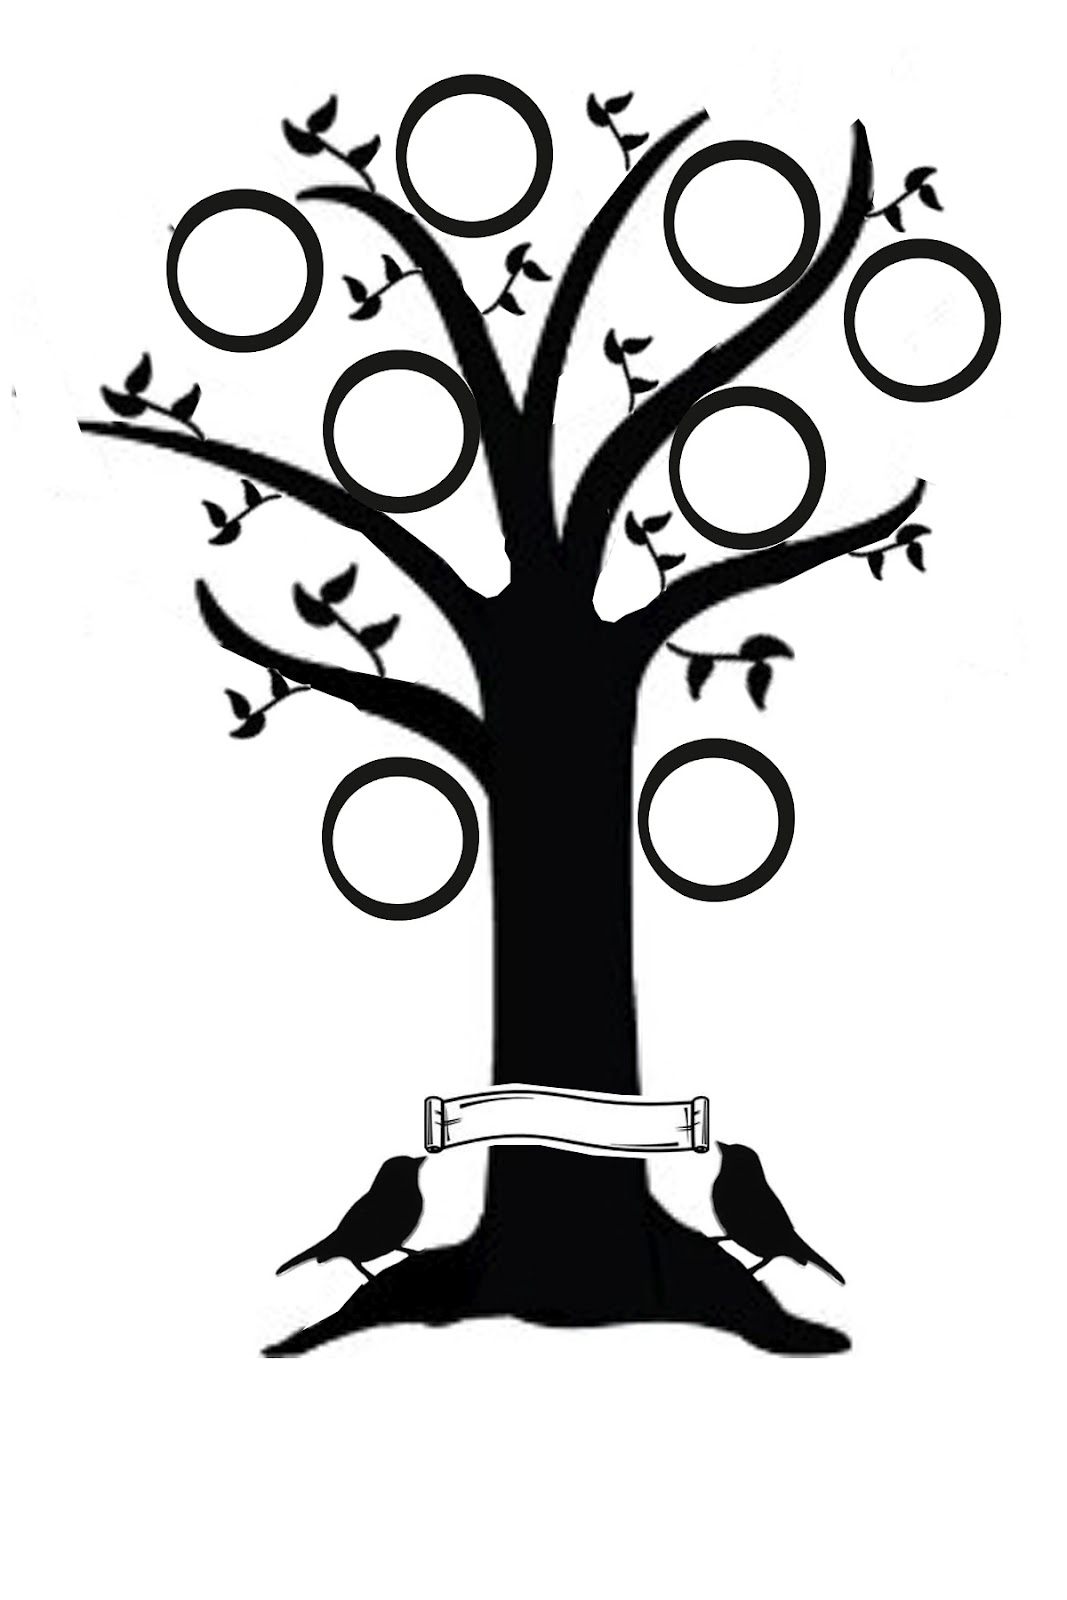 35 Family Tree Example For Kids Free Cliparts That You Can Download